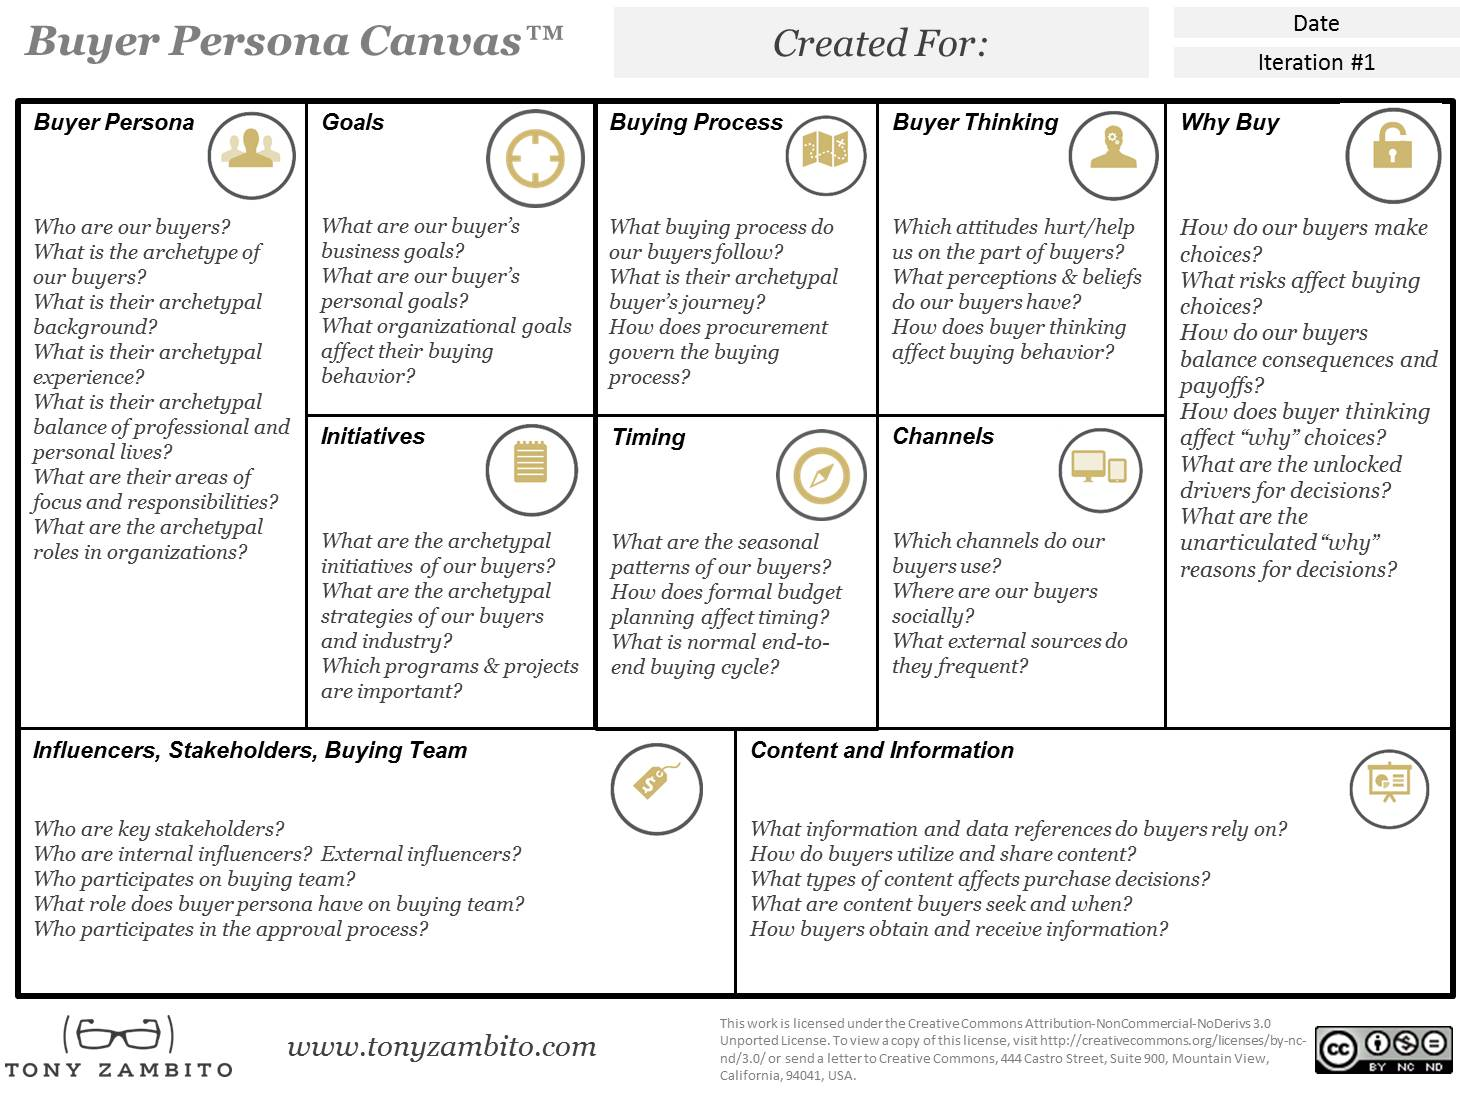 Buyer-Persona-Canvas.jpg